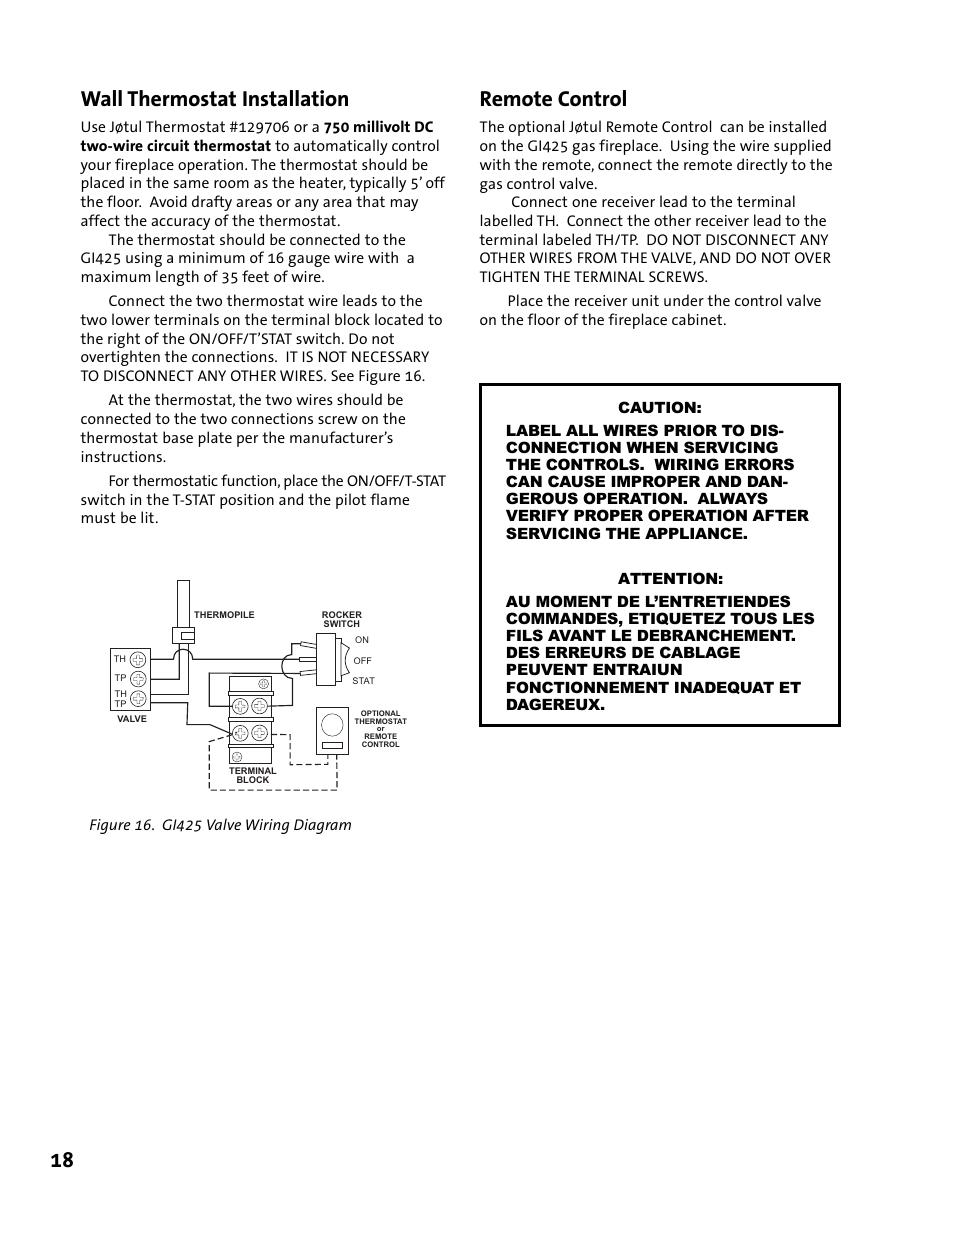 18 Wall Thermostat Installation Remote Control Jotul Gi 425 Dv Wiring A User Manual Page 32